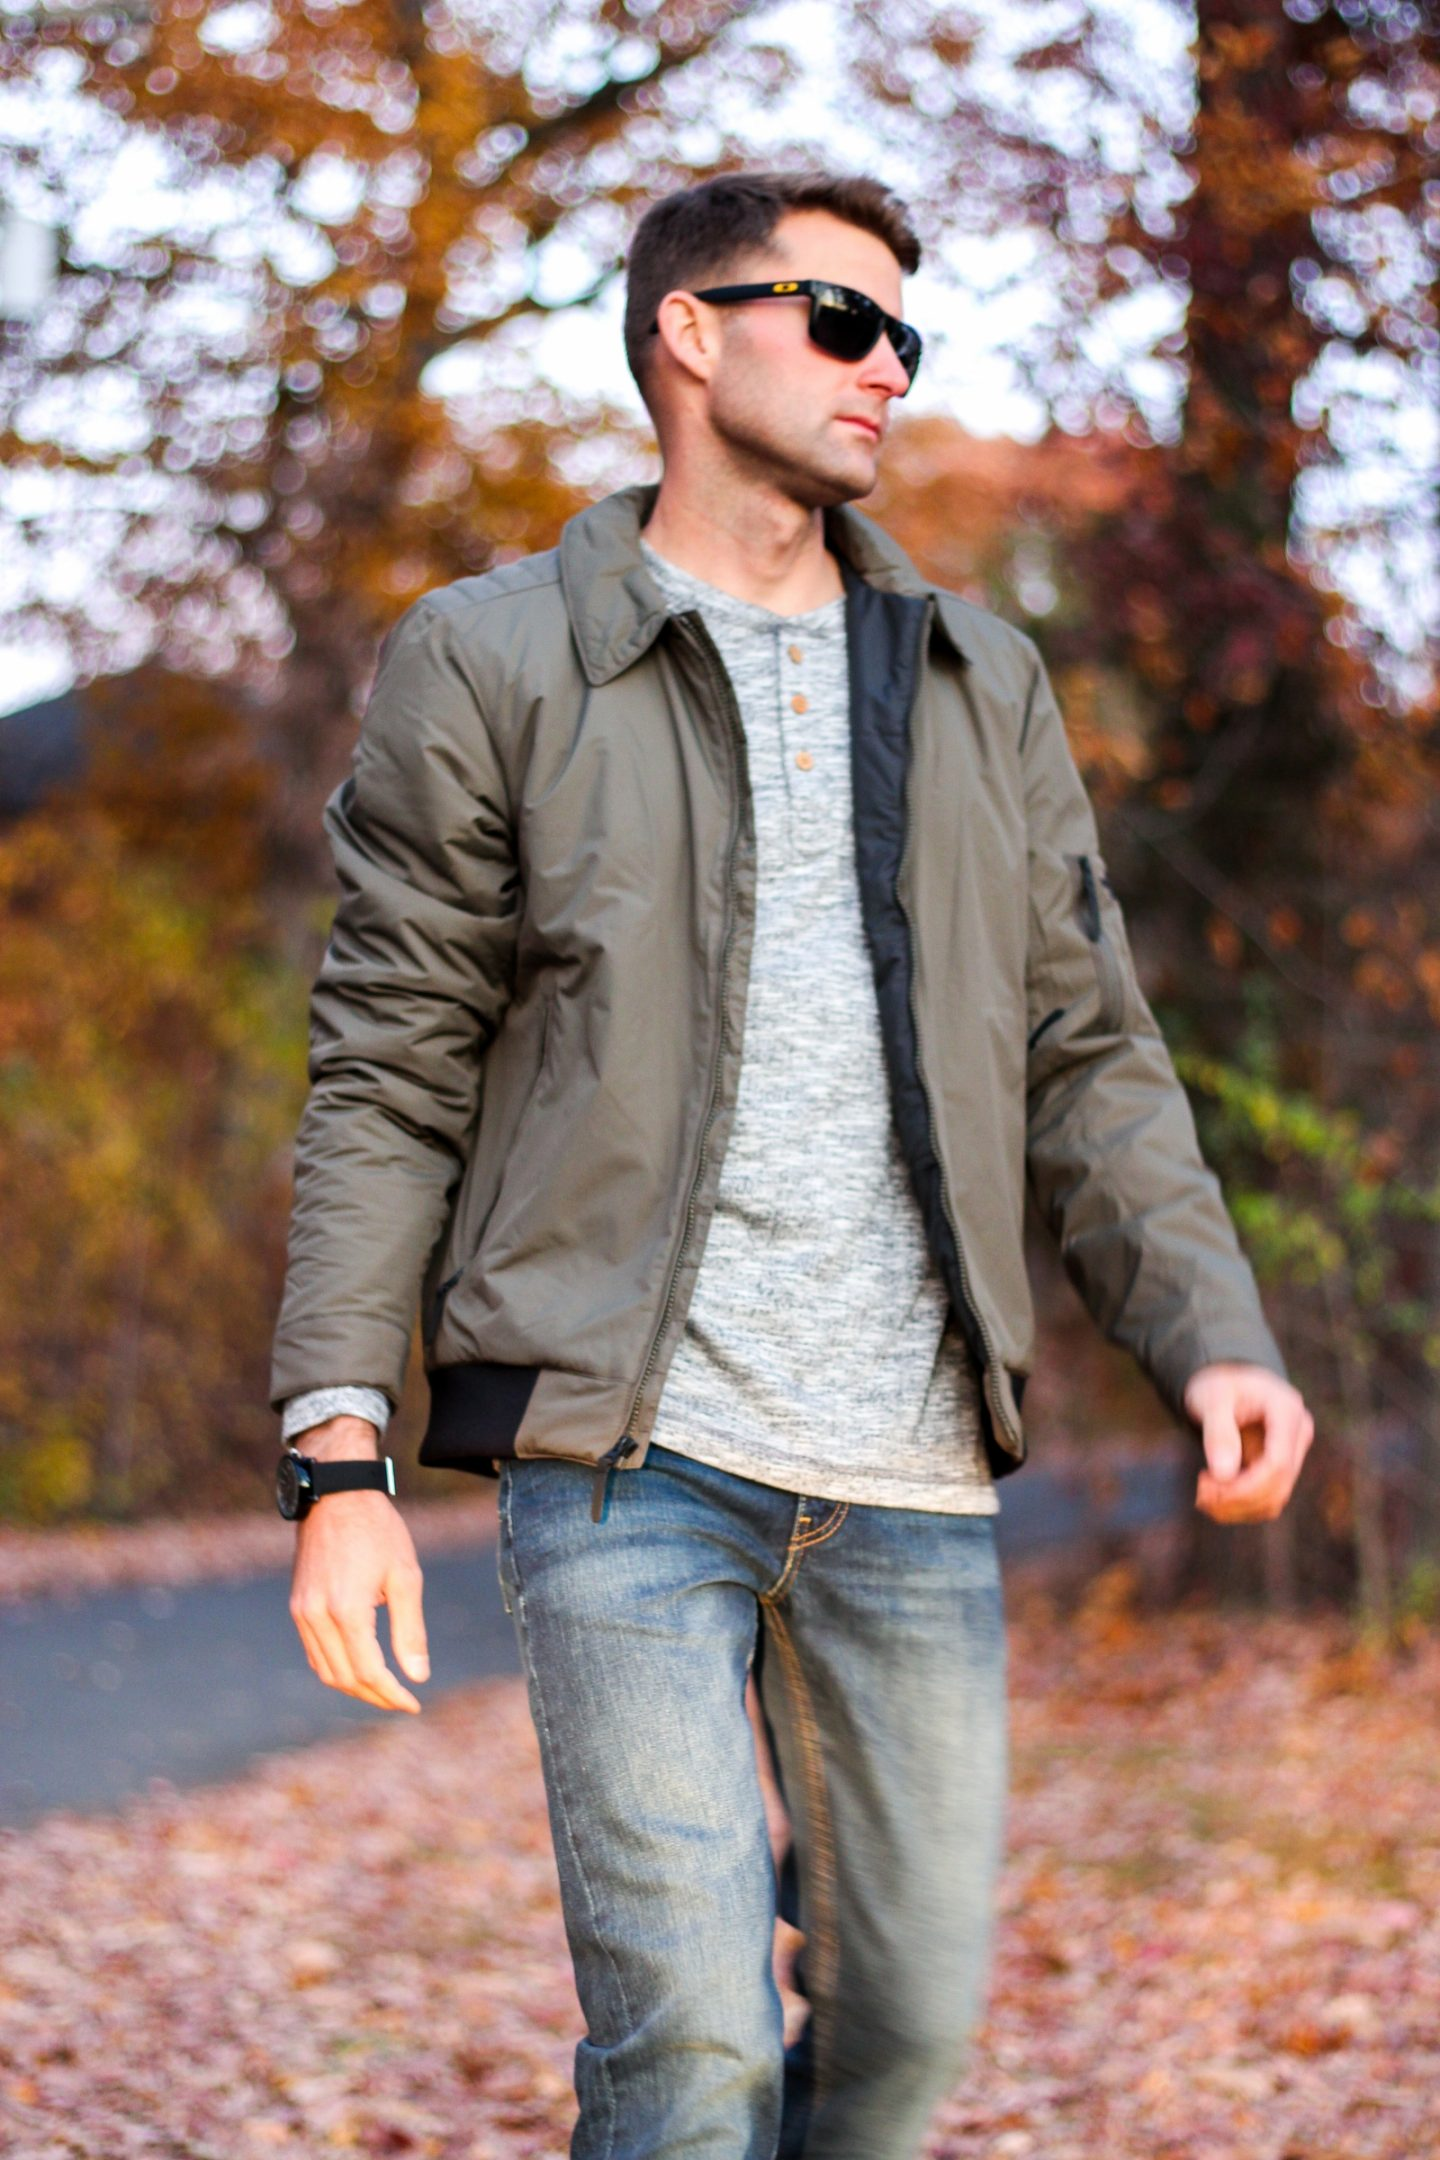 Christmas Shopping Guide: Gifts For Him by Washington DC fashion blogger Styled Blonde